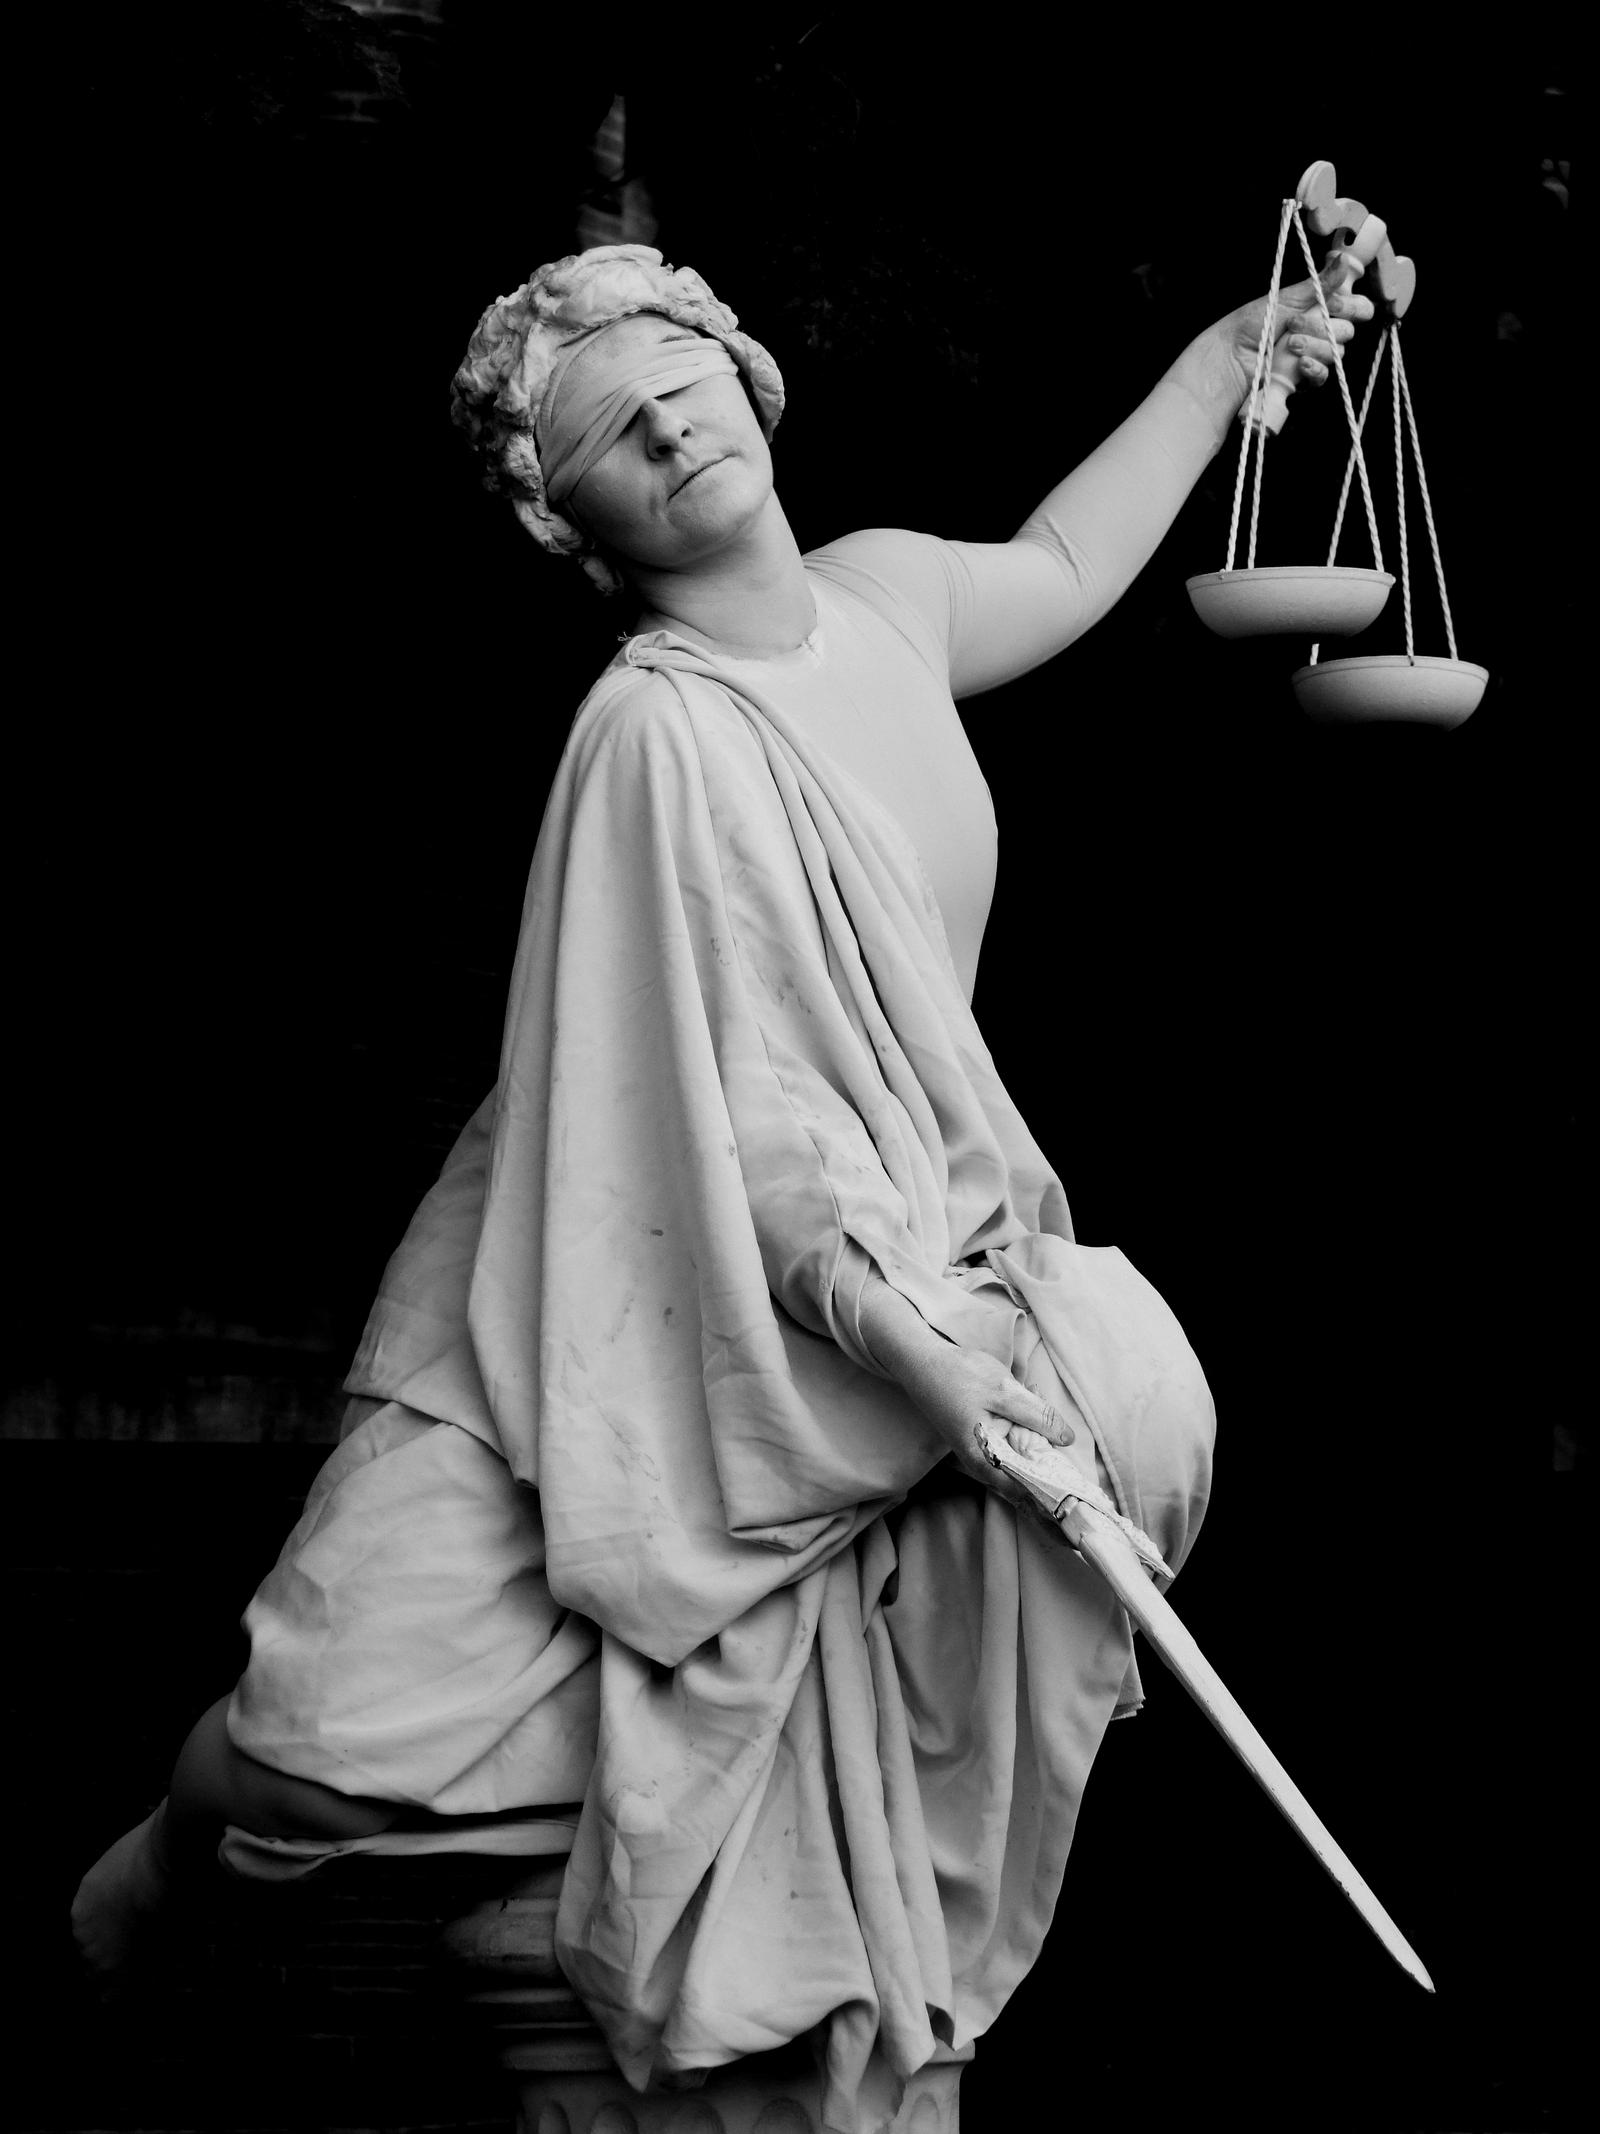 lady justice statue drawing - photo #11